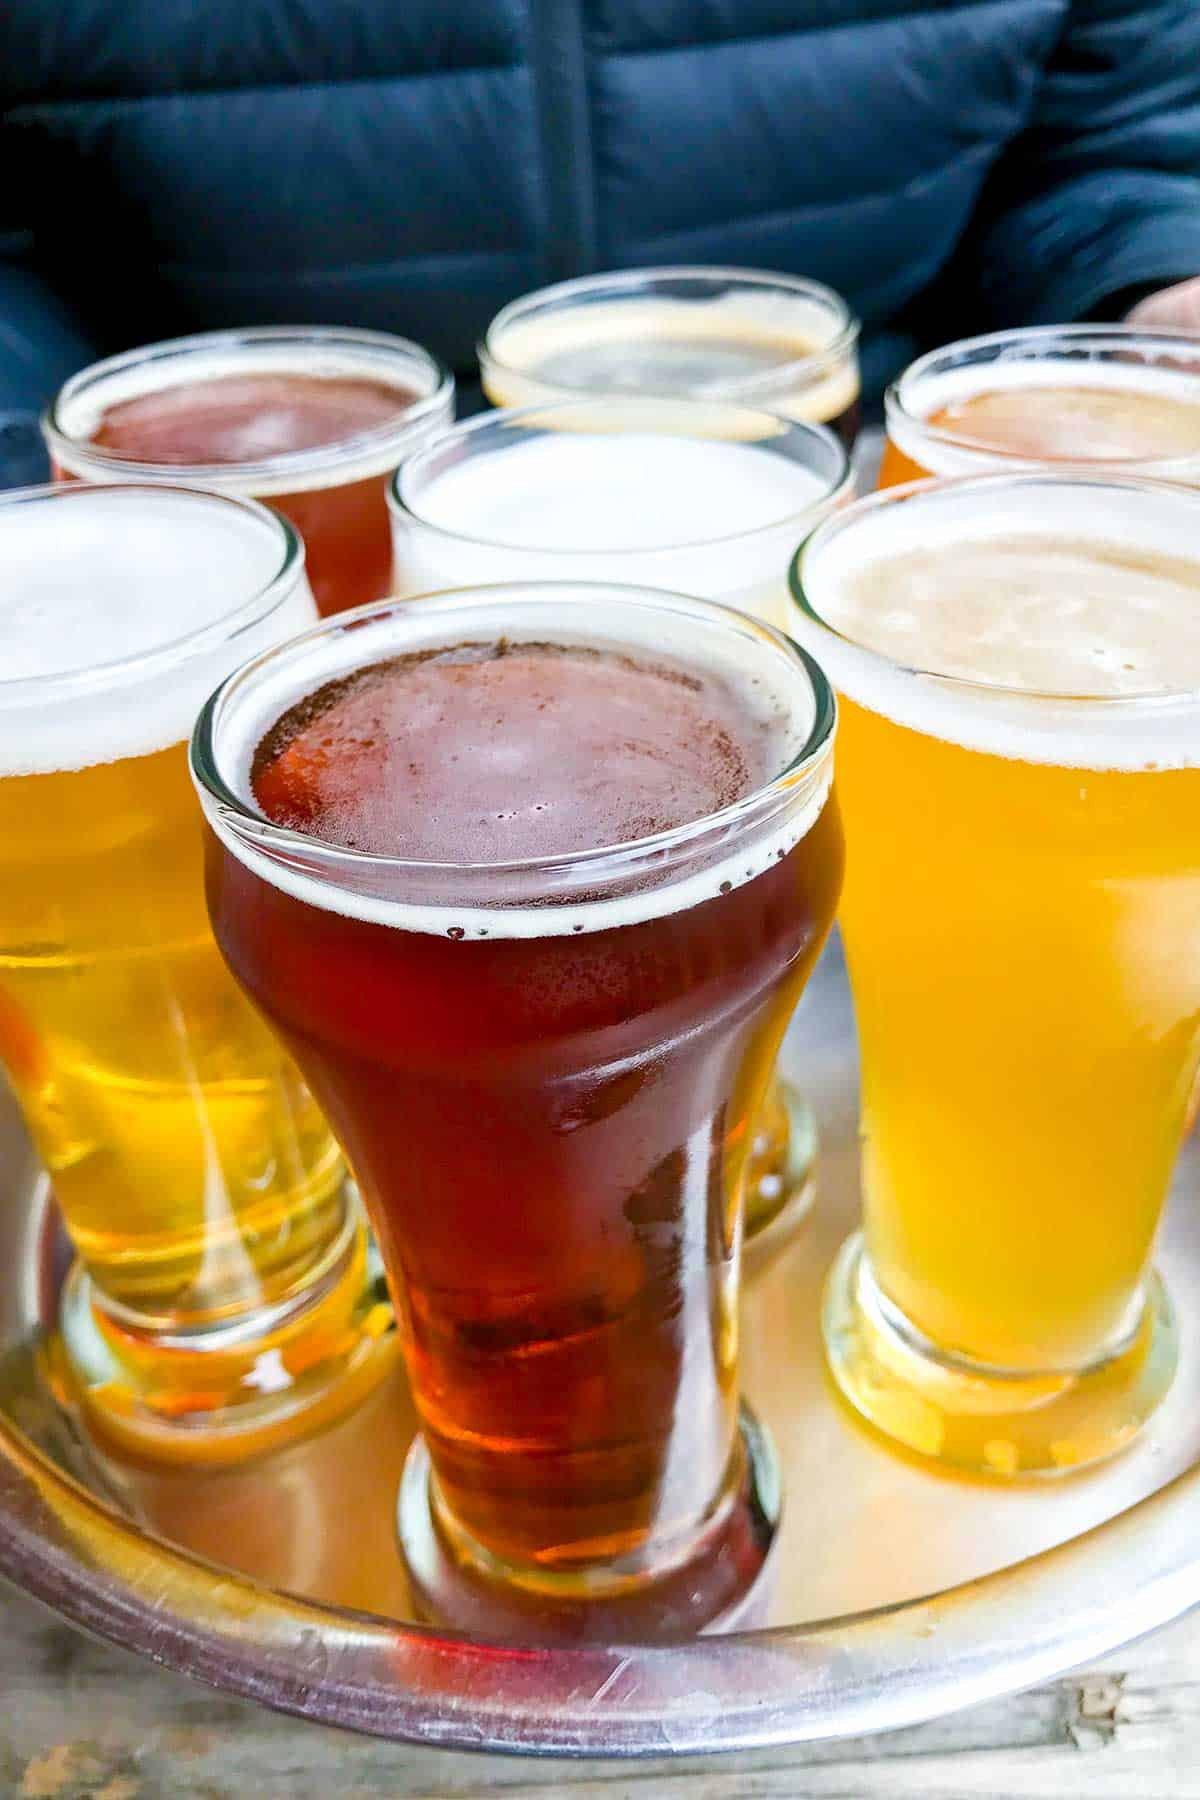 Beer Sampler from Island Hoppin Brewery on Orcas Island